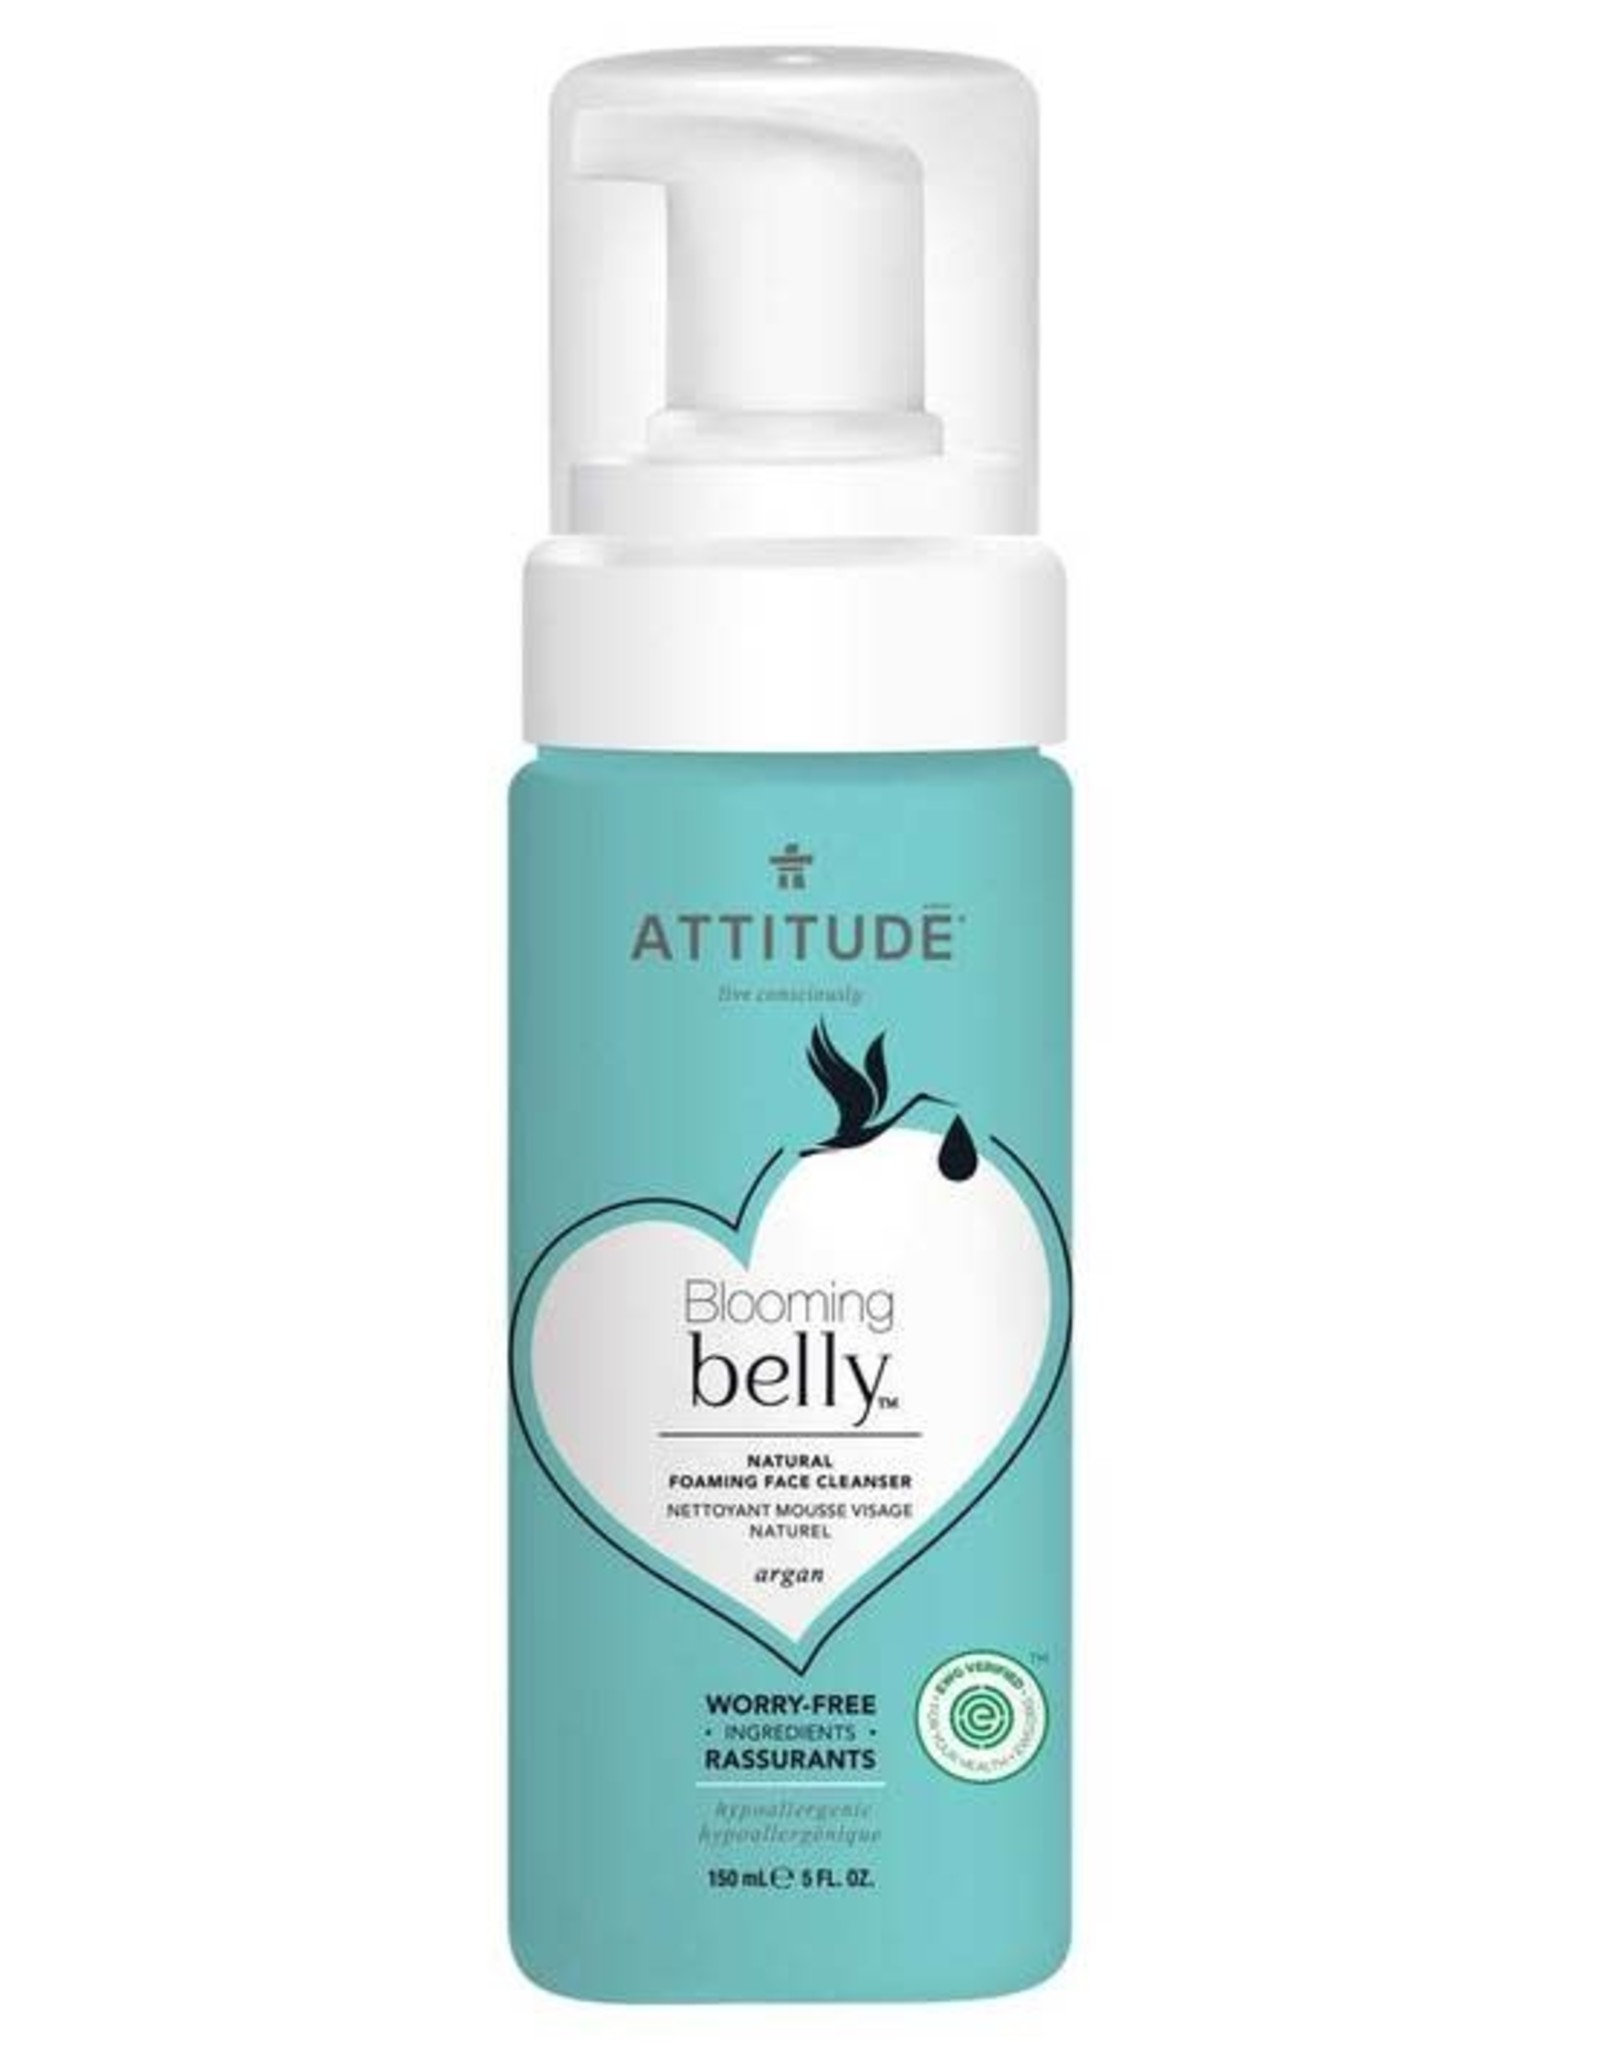 Attitude Blooming Belly Natural Foaming Face Cleanser 150ml